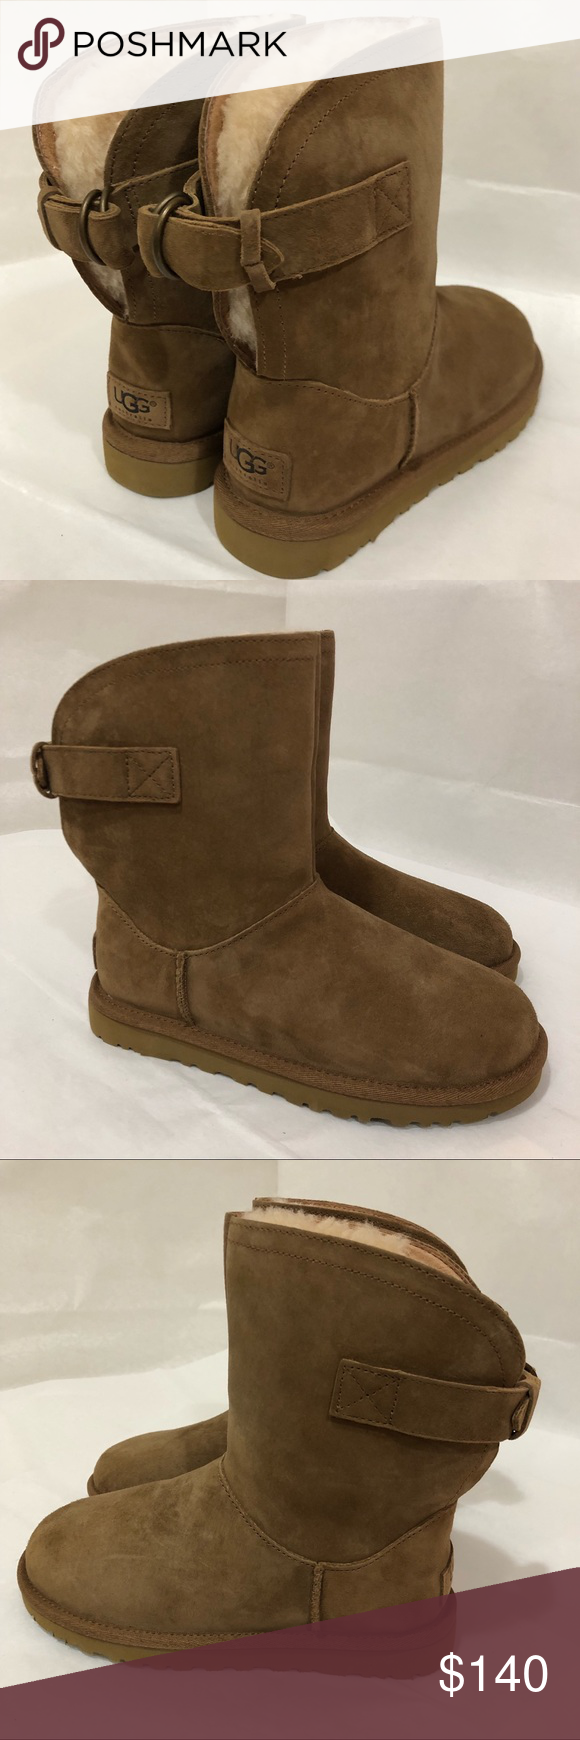 cde5a7d6b94 UGG Remora Water Resistant Booties Size 5 DESCRIPTION Pull on these ...